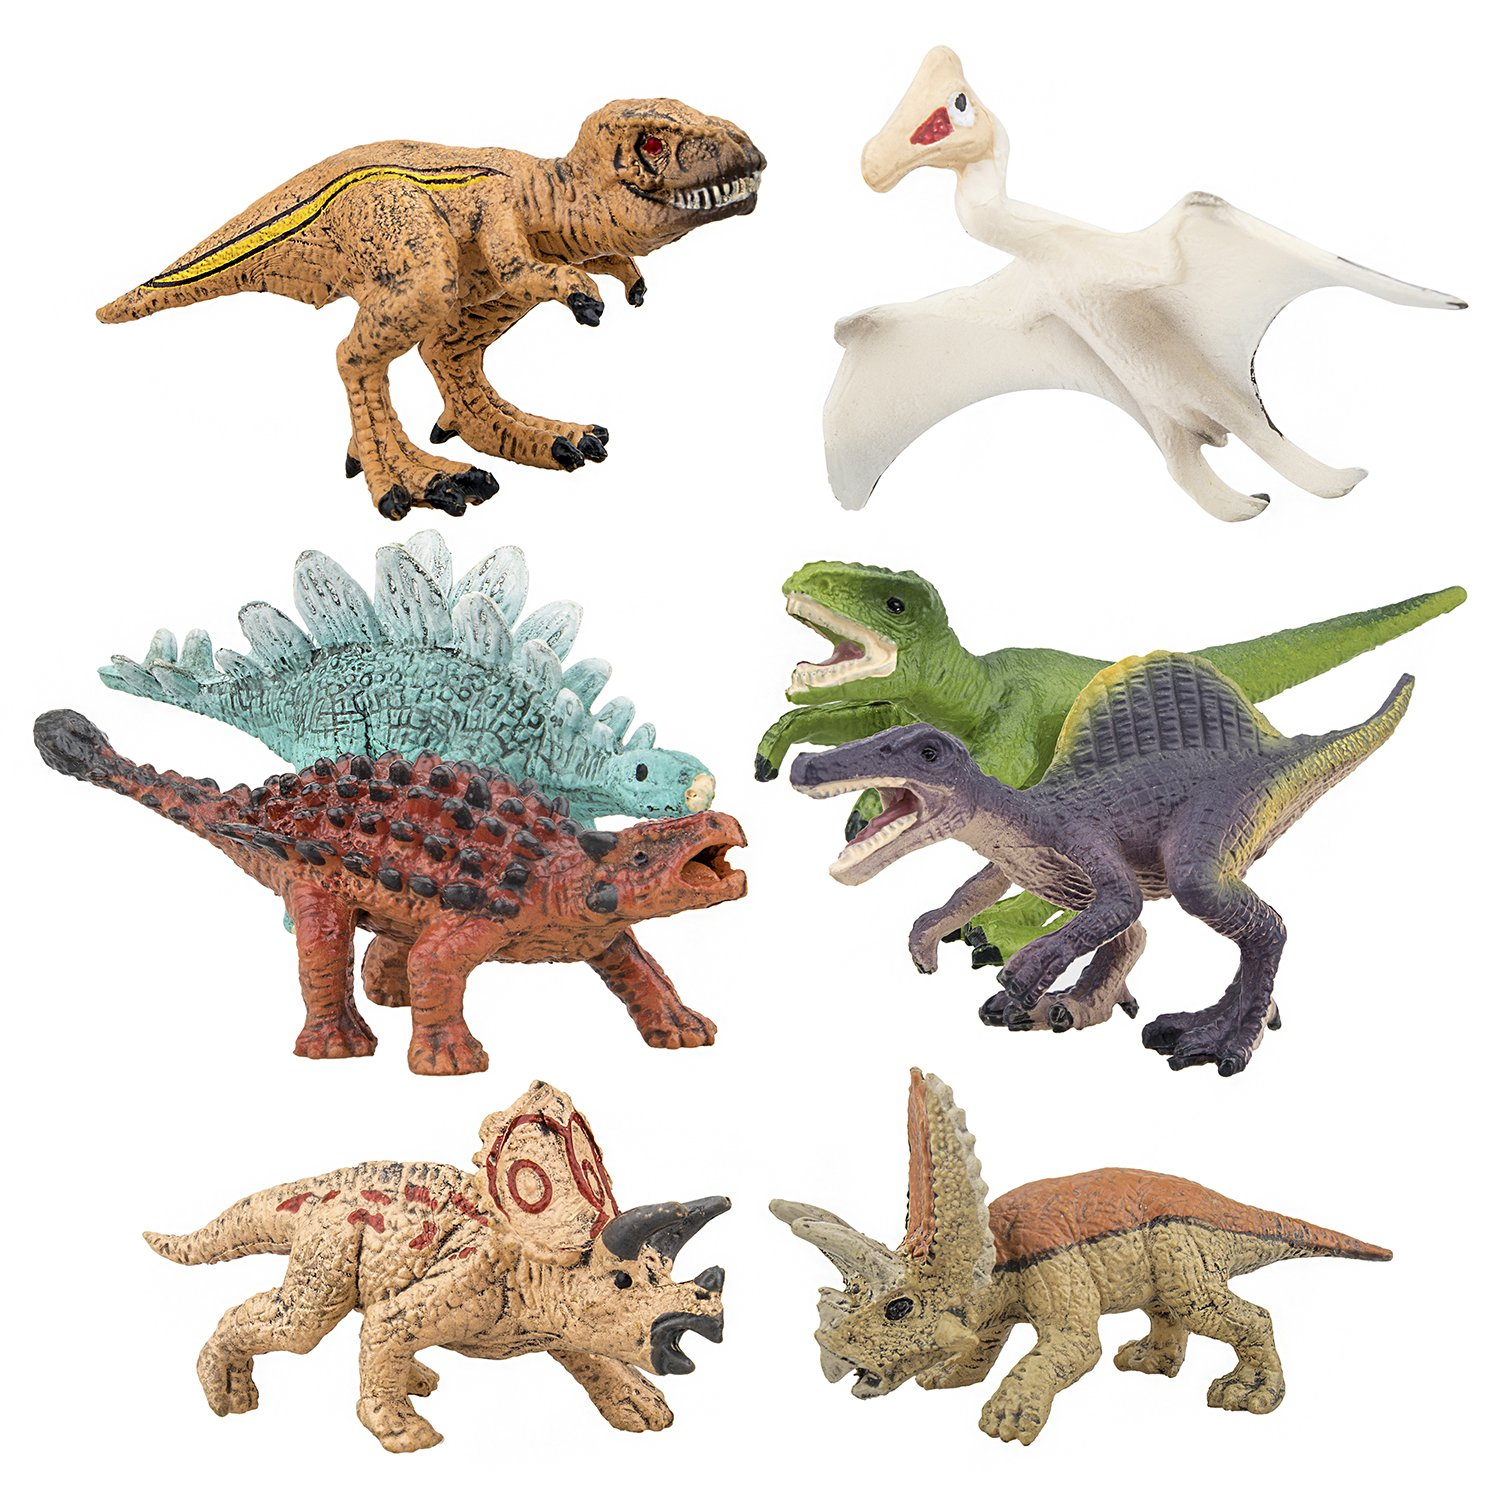 Toymany 8PCS Realistic Mini Dinosaurs Figures, Detailed Textures Dino Figurines Cake Topper Toy Set, Birthday Gift for Kids Children Toddler